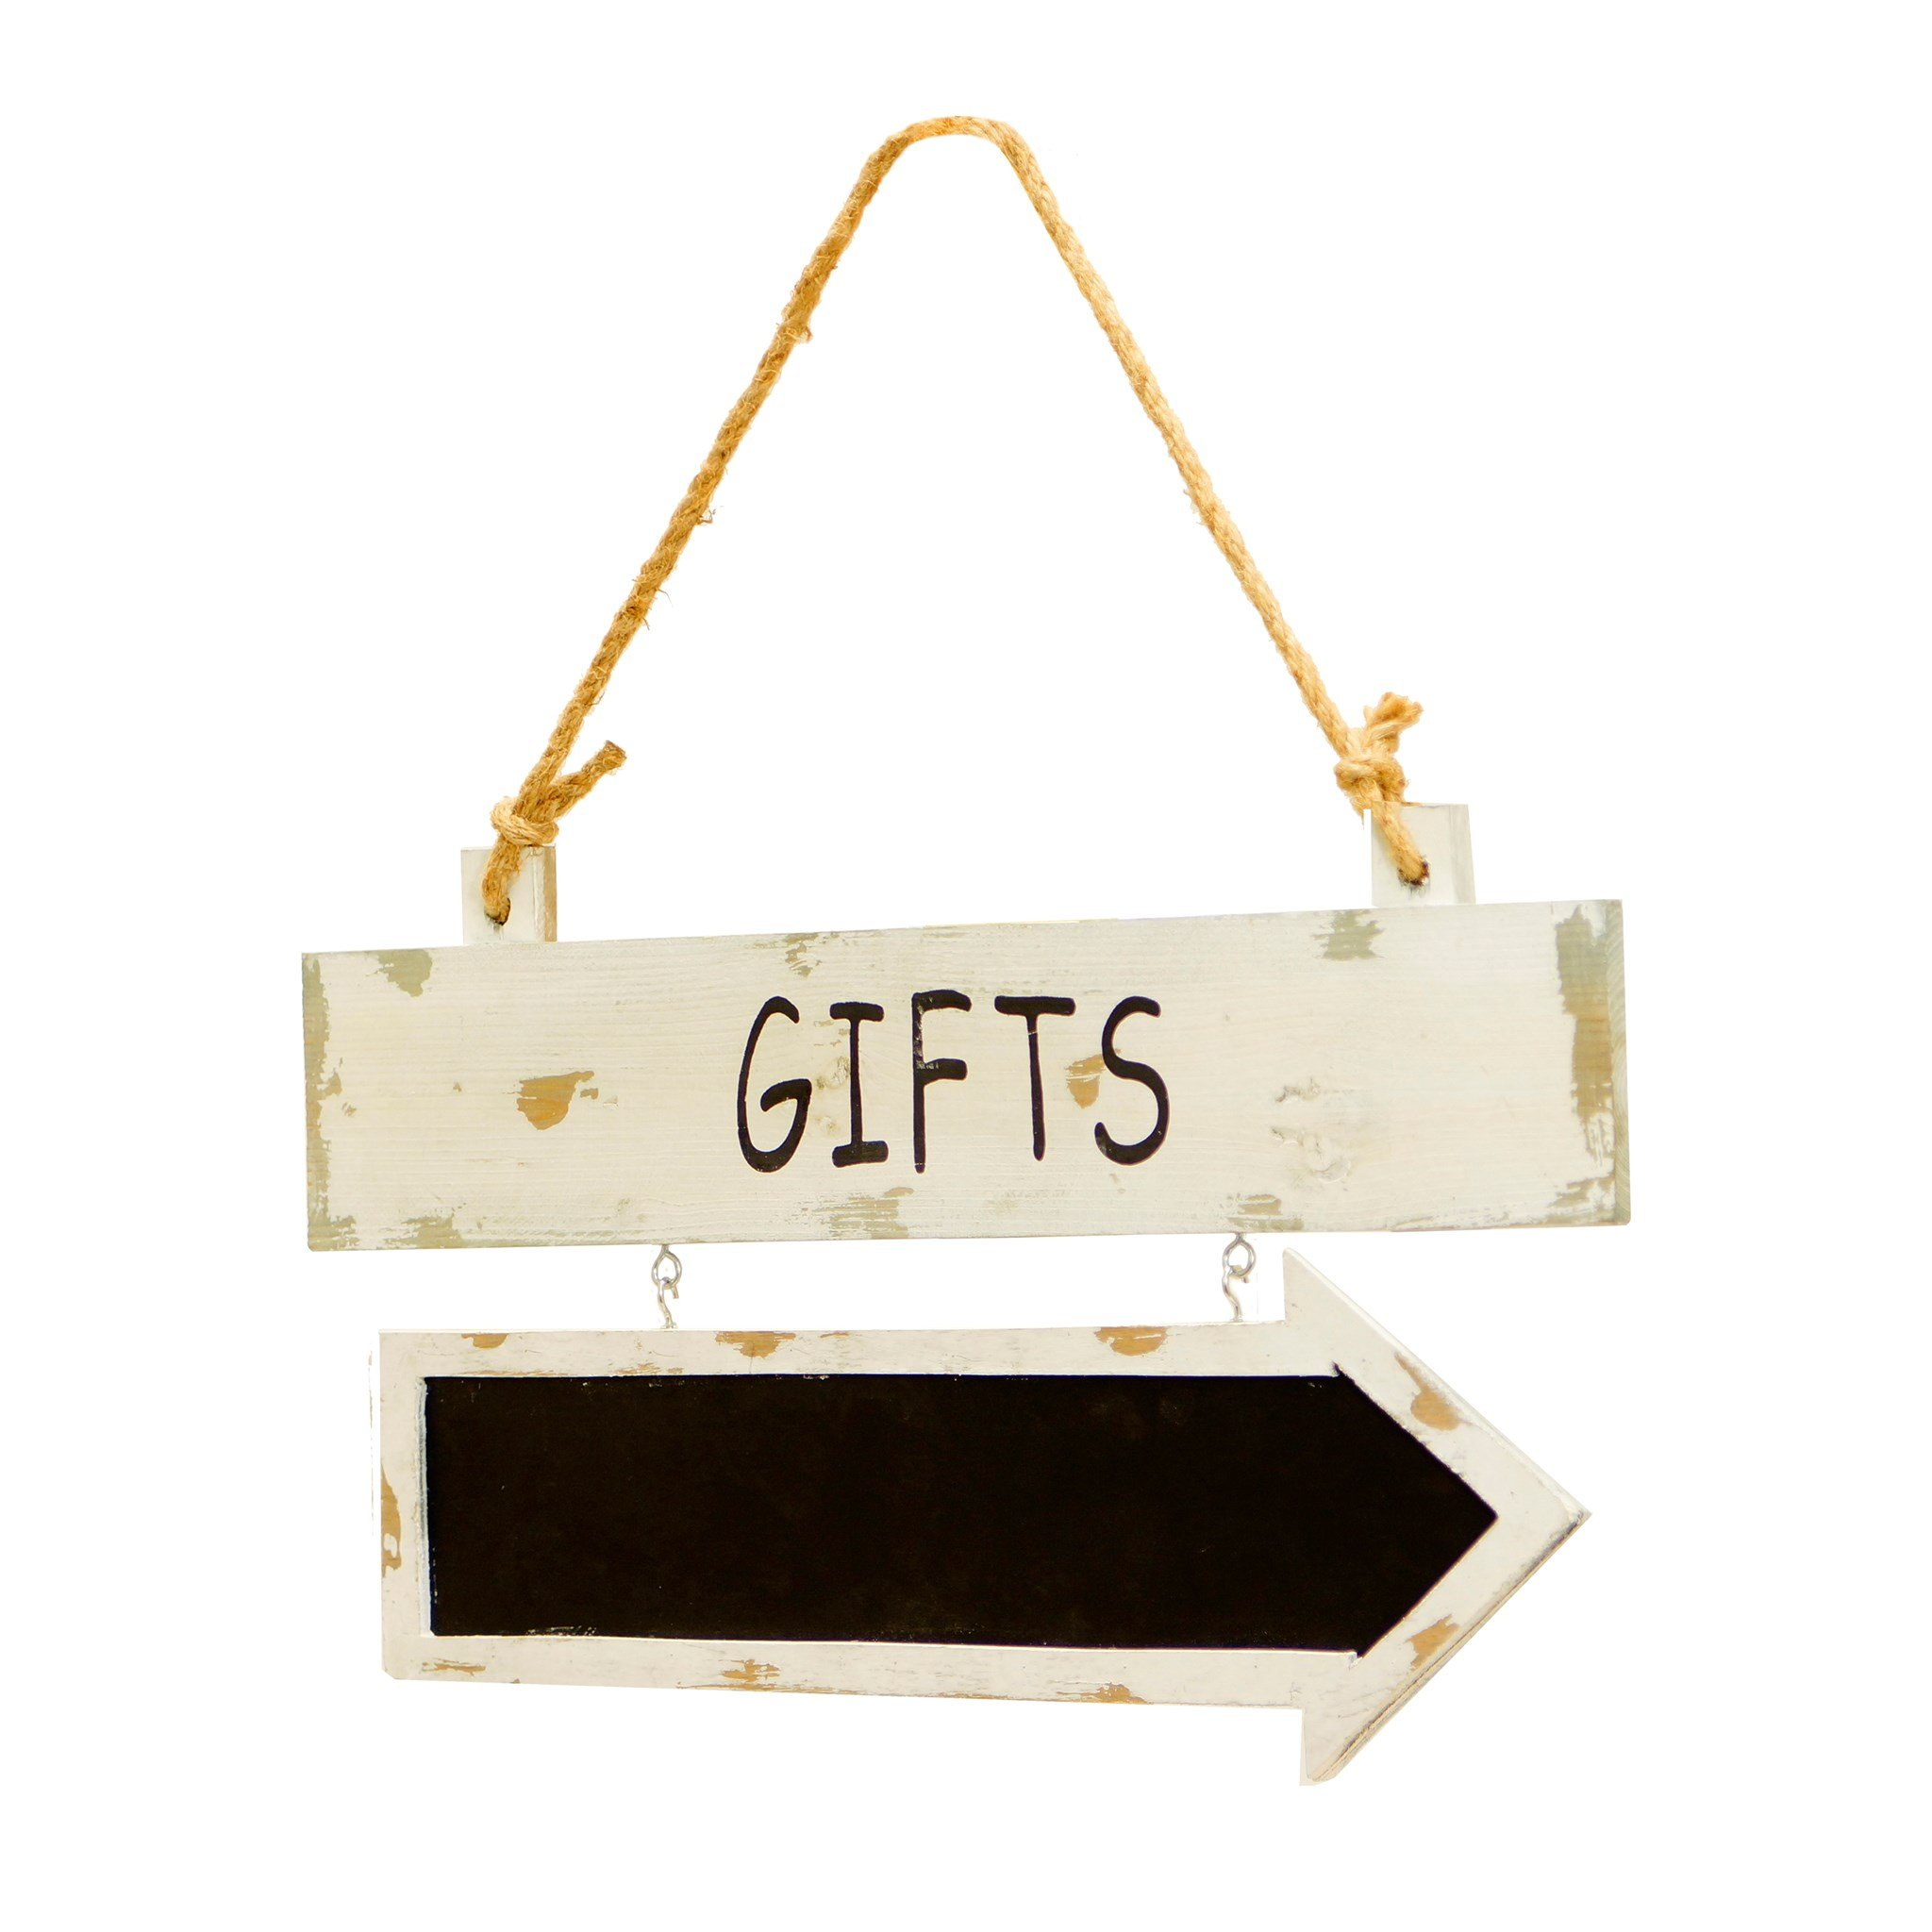 GIFTS - Wooden Sign with Attached Chalkboard Arrow